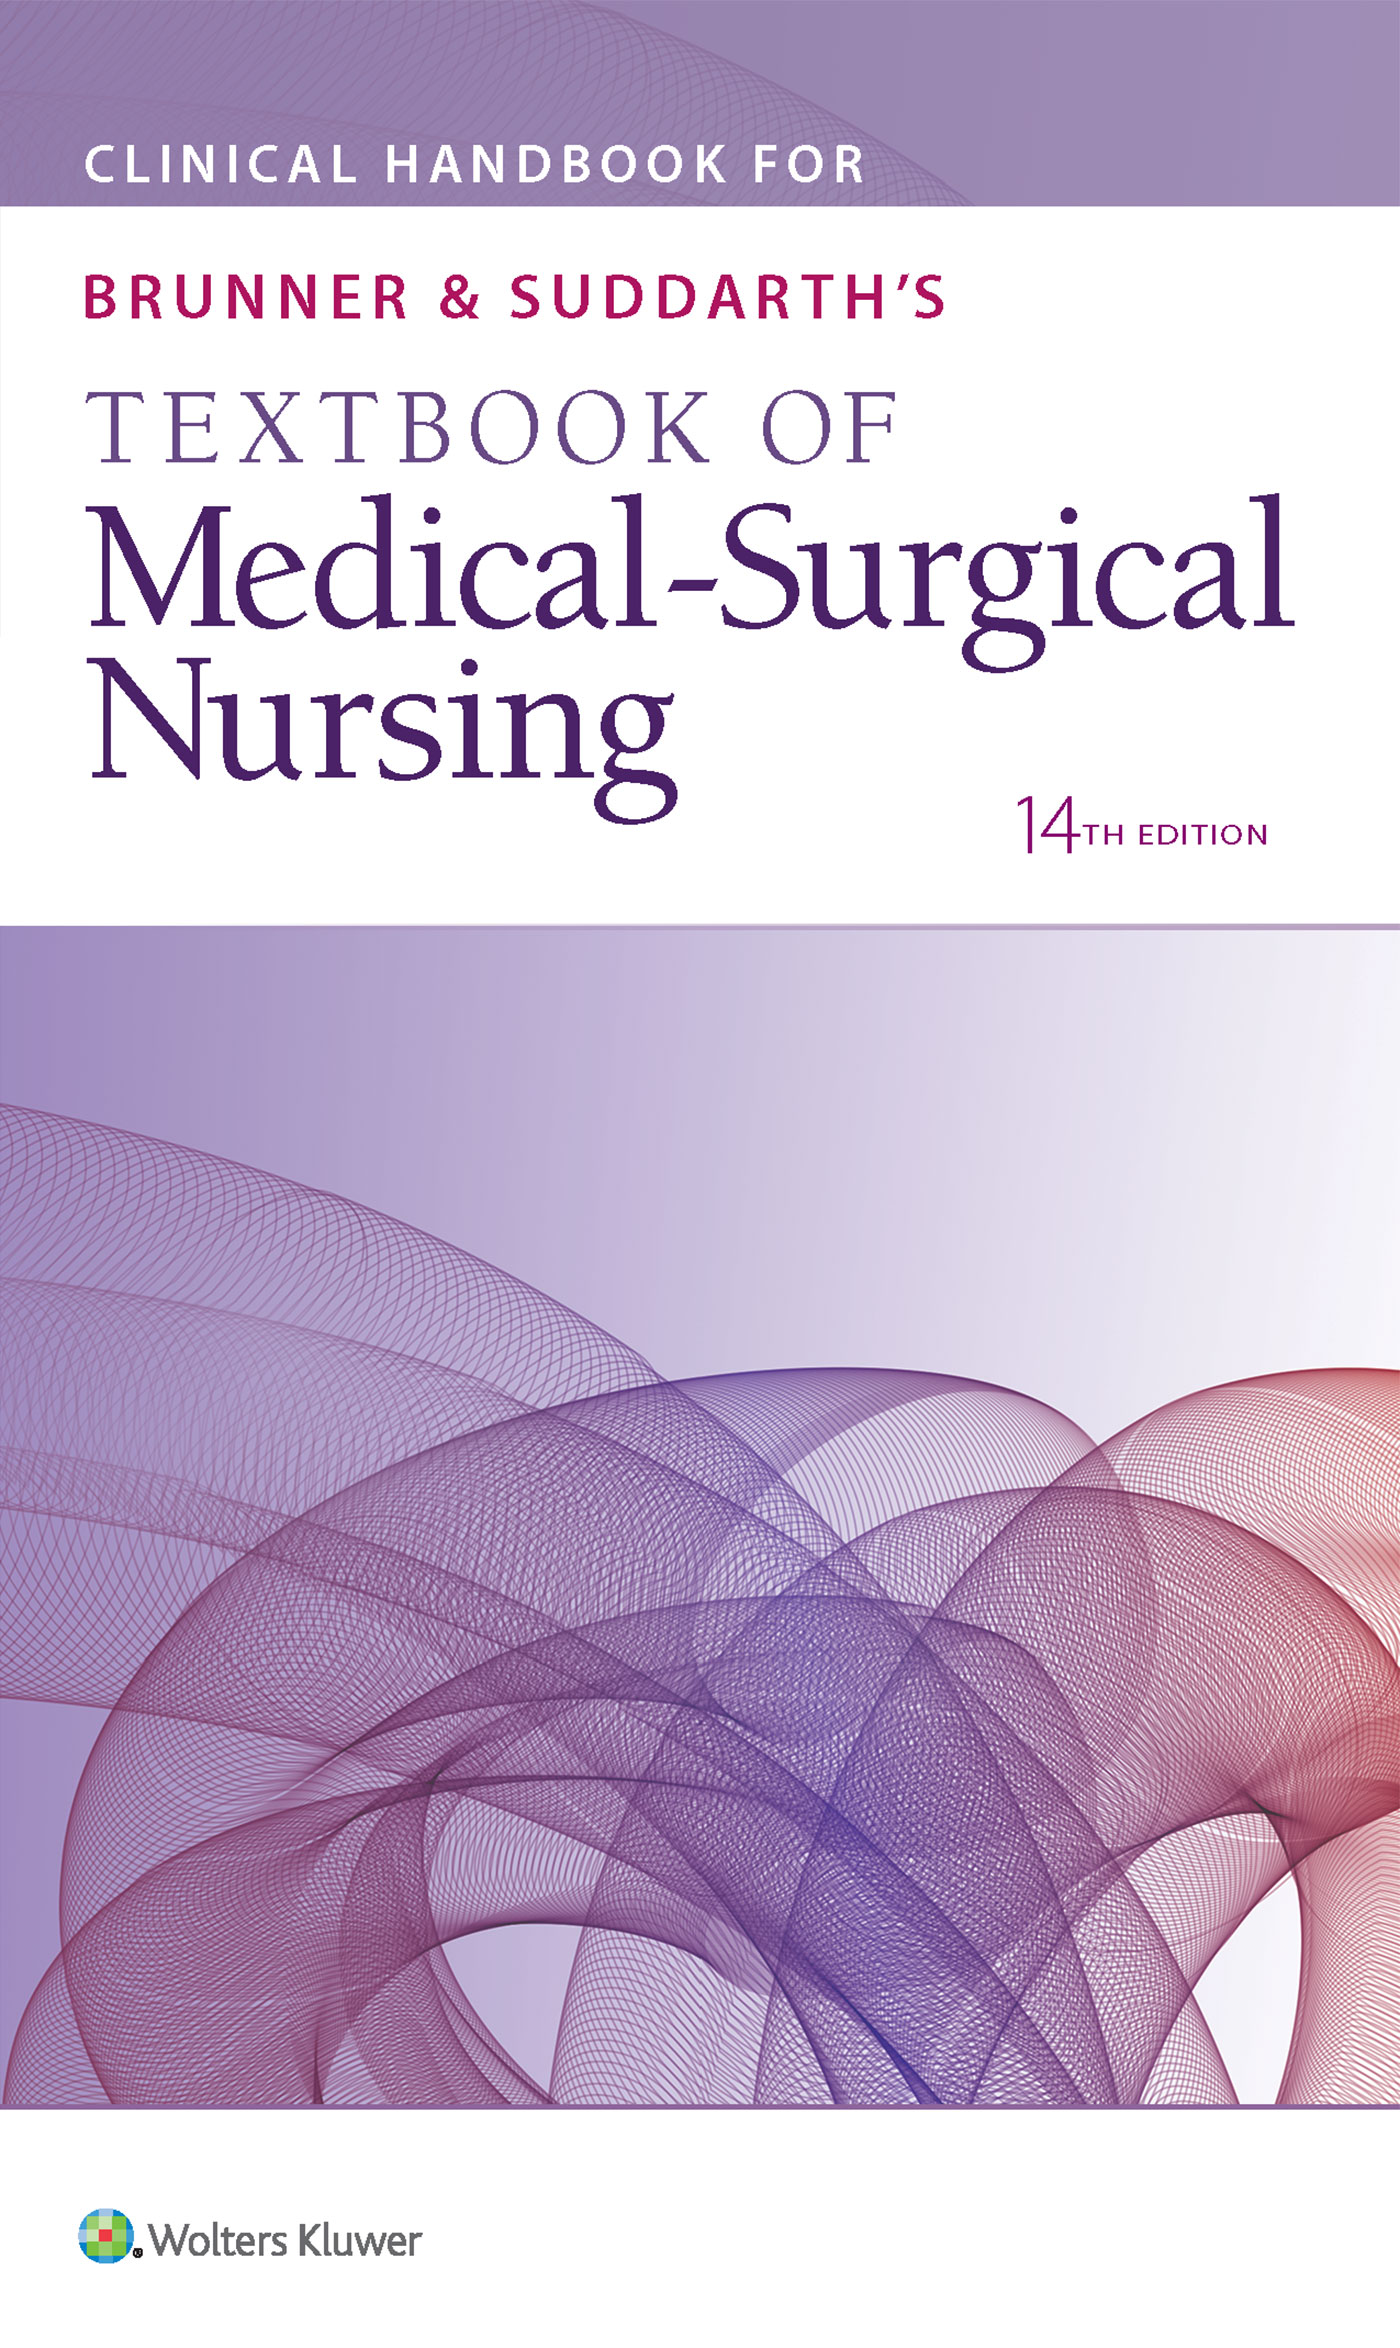 Clinical Handbook for Brunner & Suddarth's Textbook of Medical Surgical Nursing